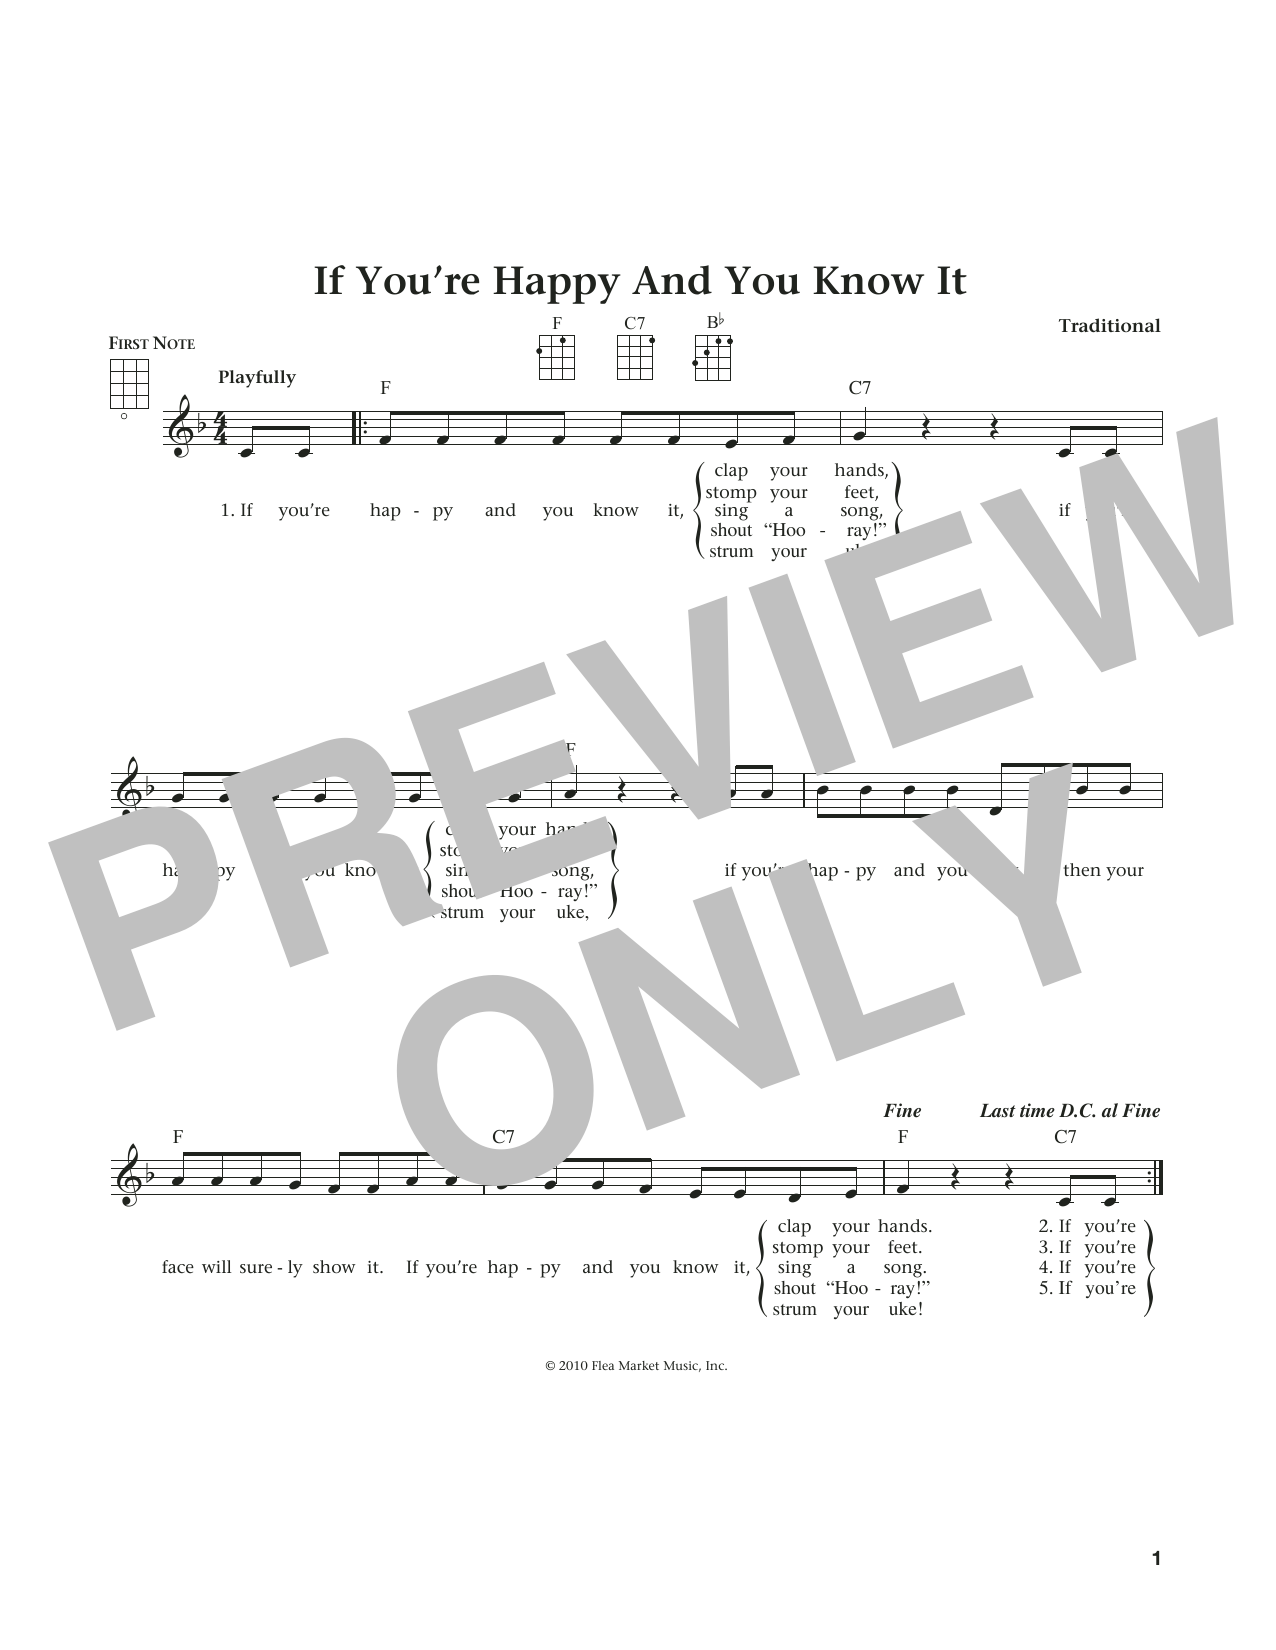 If You're Happy And You Know It (from The Daily Ukulele) (arr. Liz and Jim Beloff) (Ukulele)